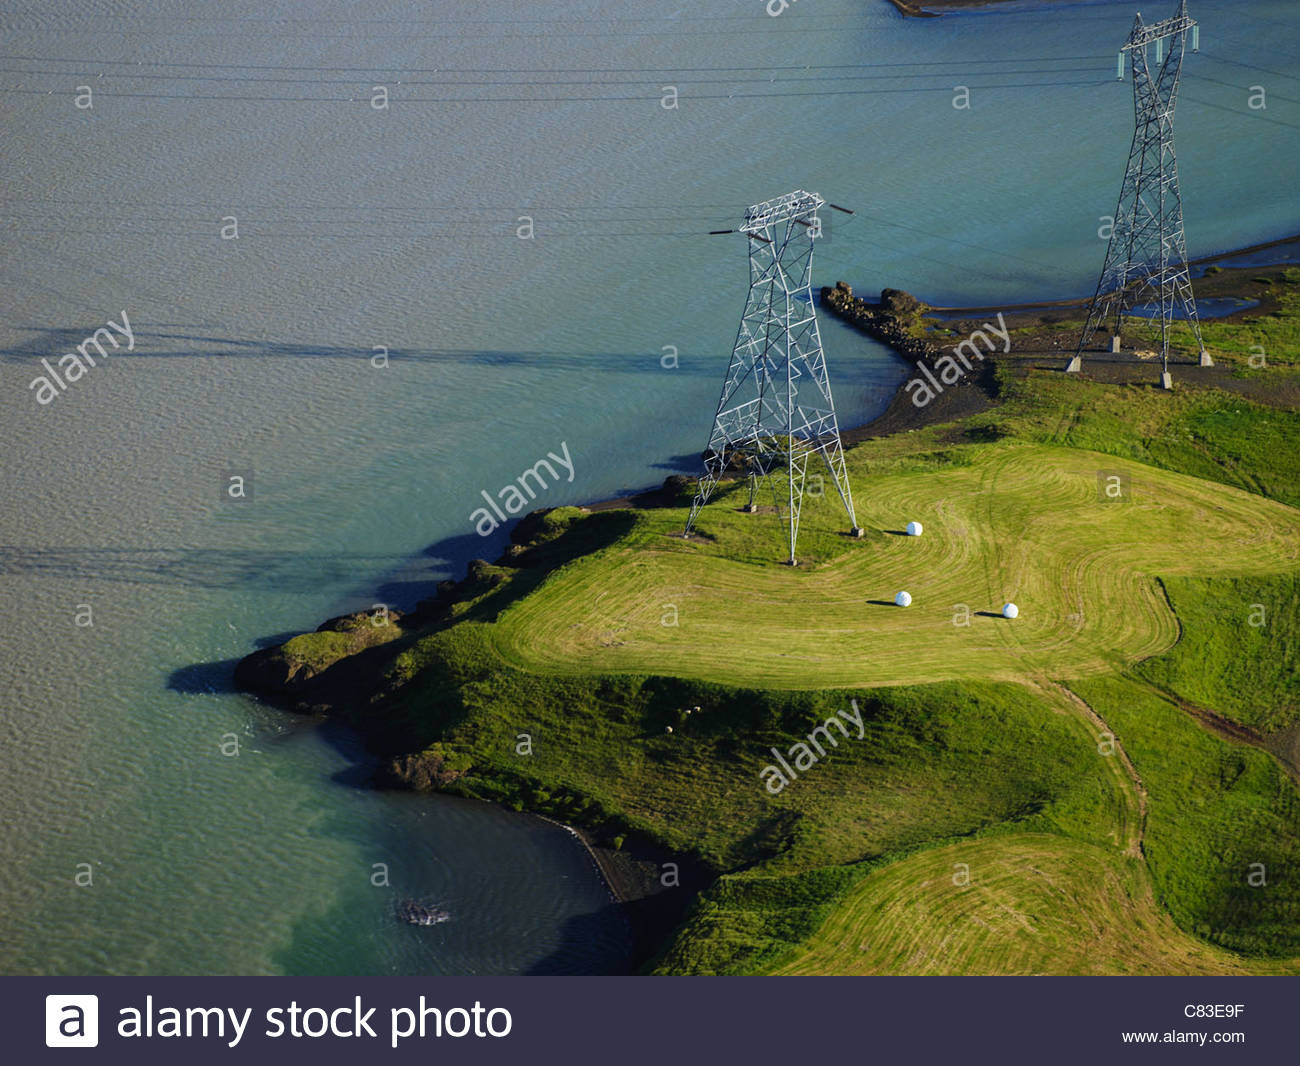 Aerial view of rural power lines - Stock Image